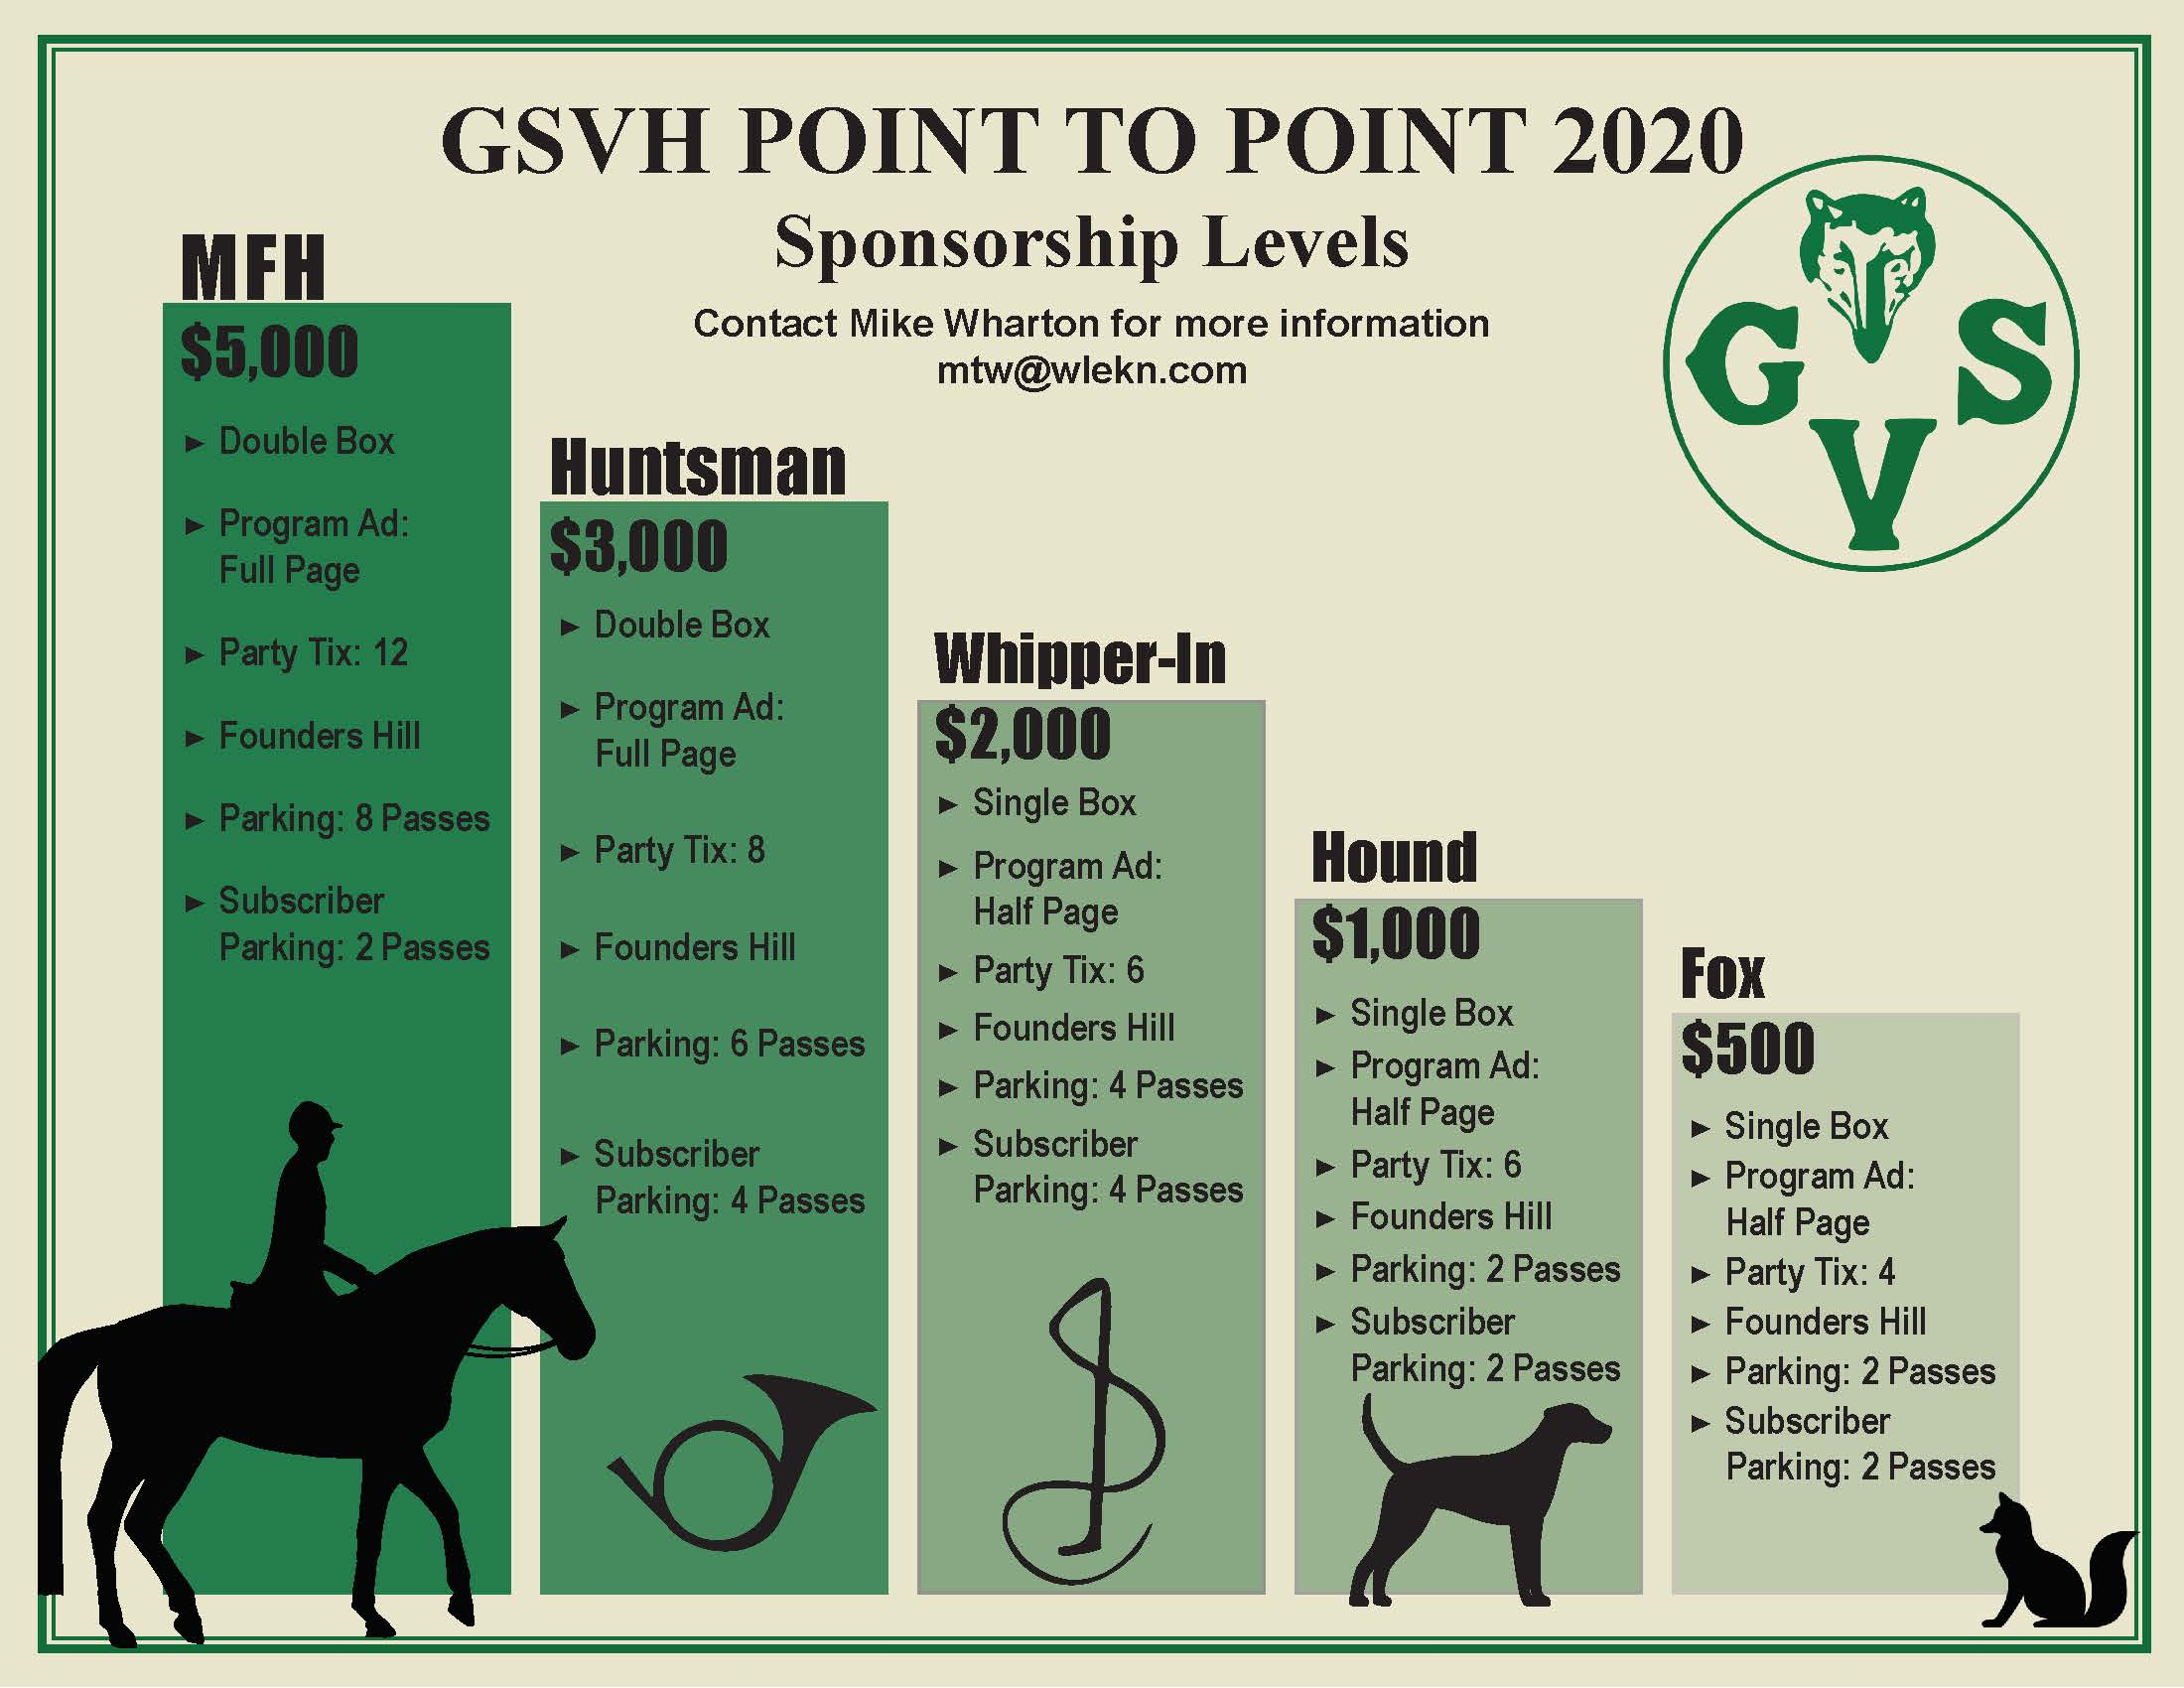 GSVH POINT TO POINT 2020 Sponsorship Levels